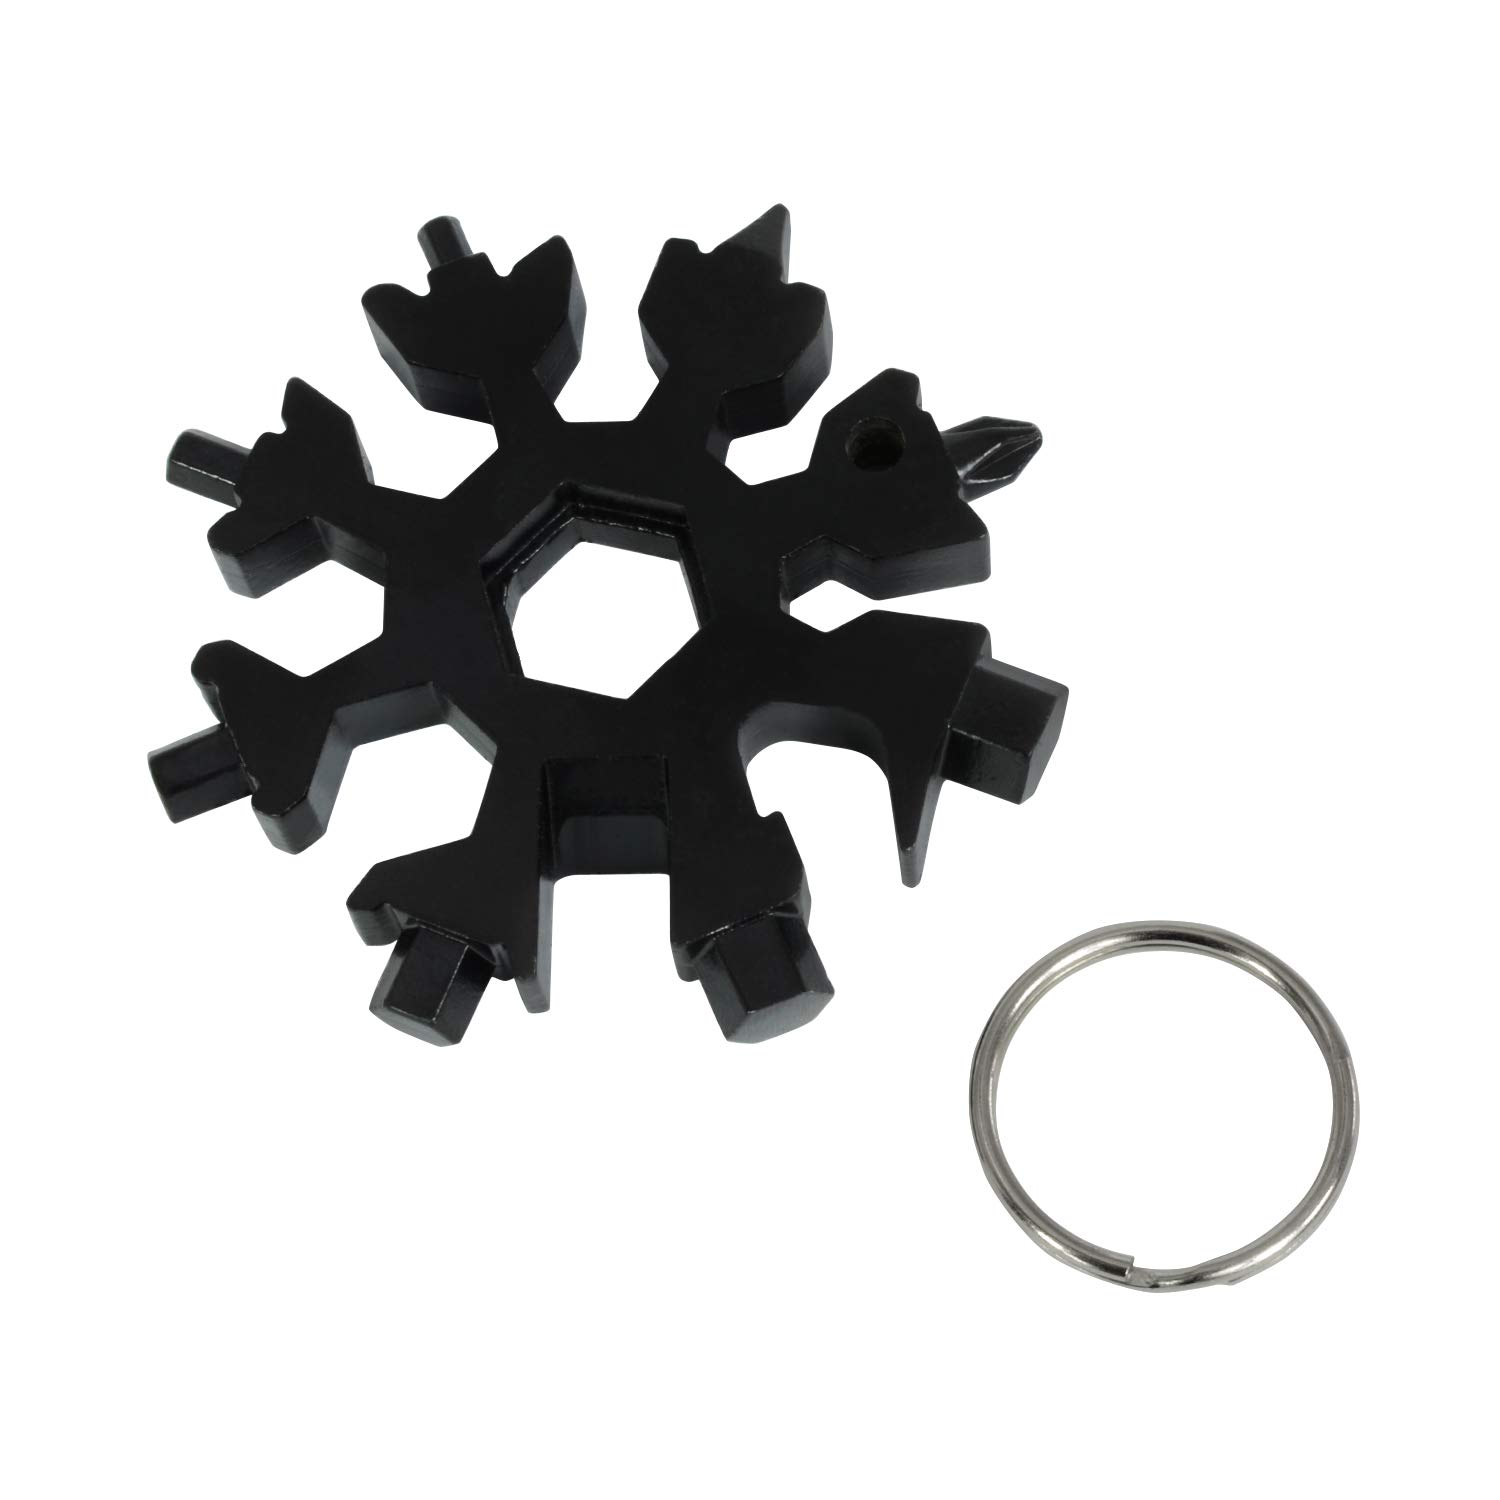 ROSE KULI Snowflakes Multitools - 18 in 1 Multi Tools Portable Wrench Screwdriver Pocket Multi-Tools for Open Key, Black